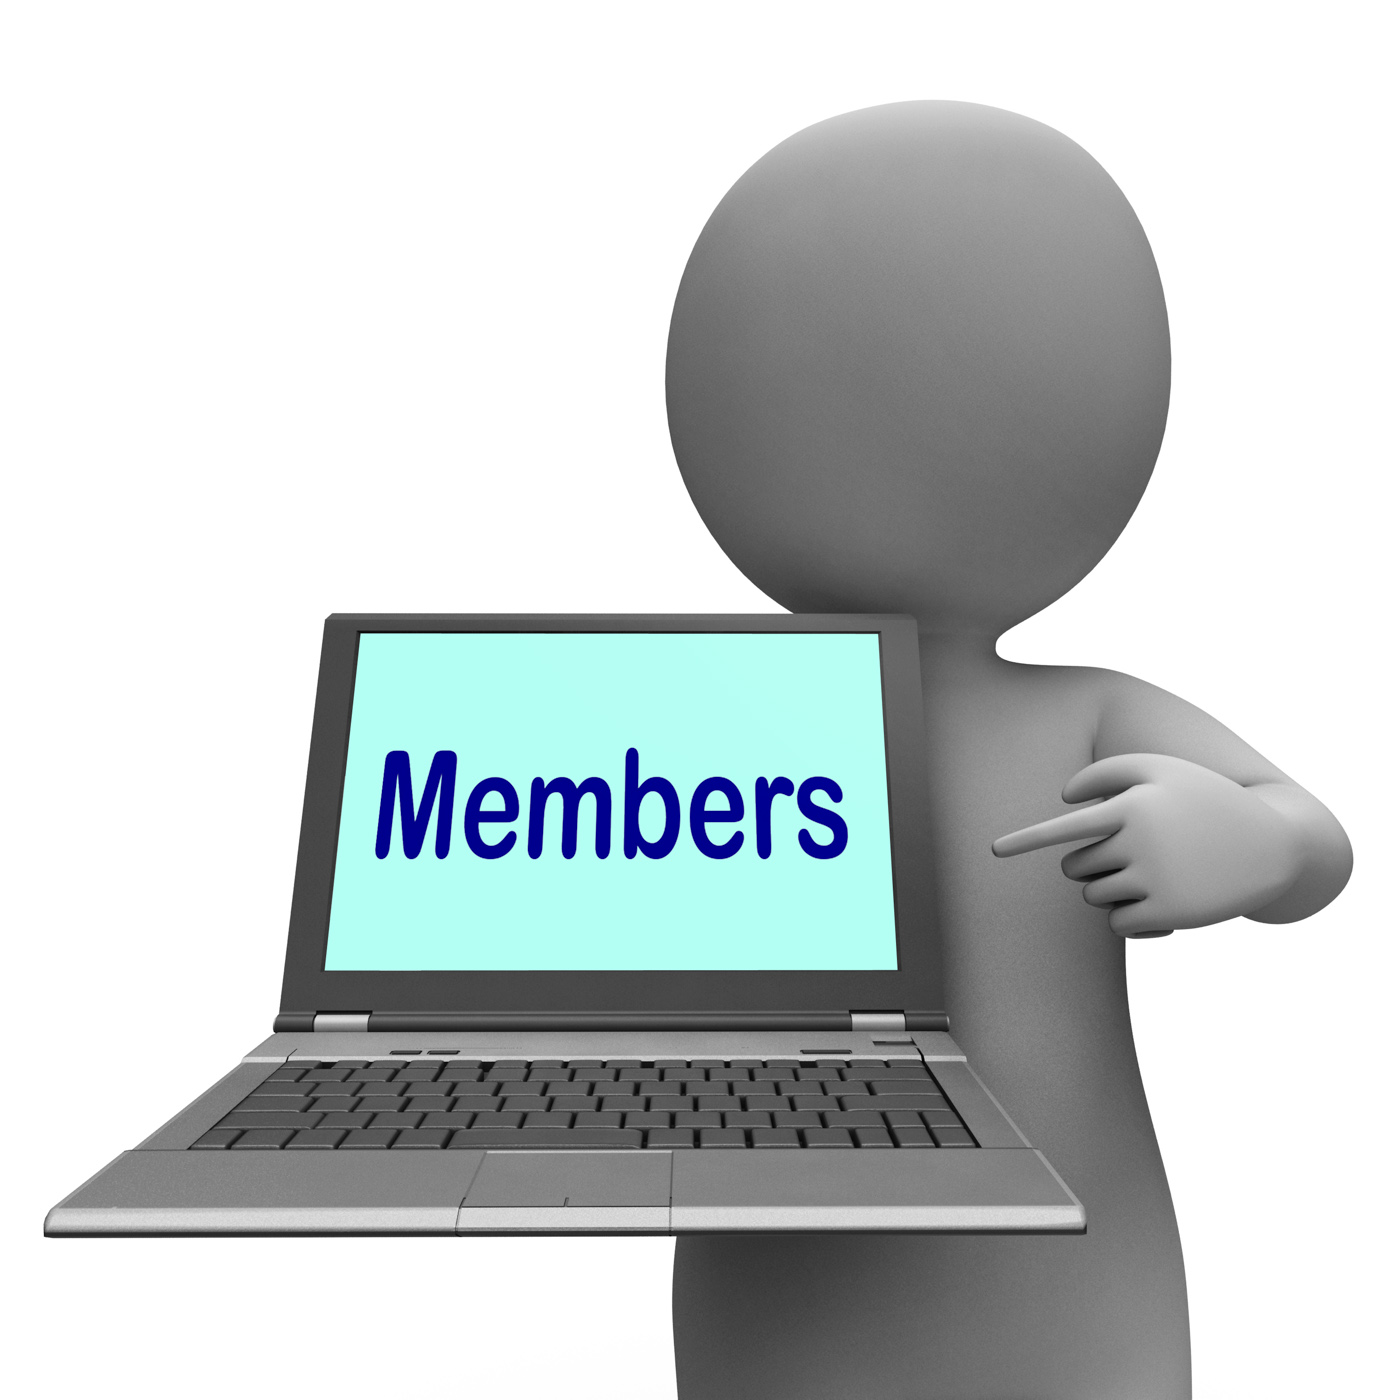 Members laptop shows member register and web subscribing photo